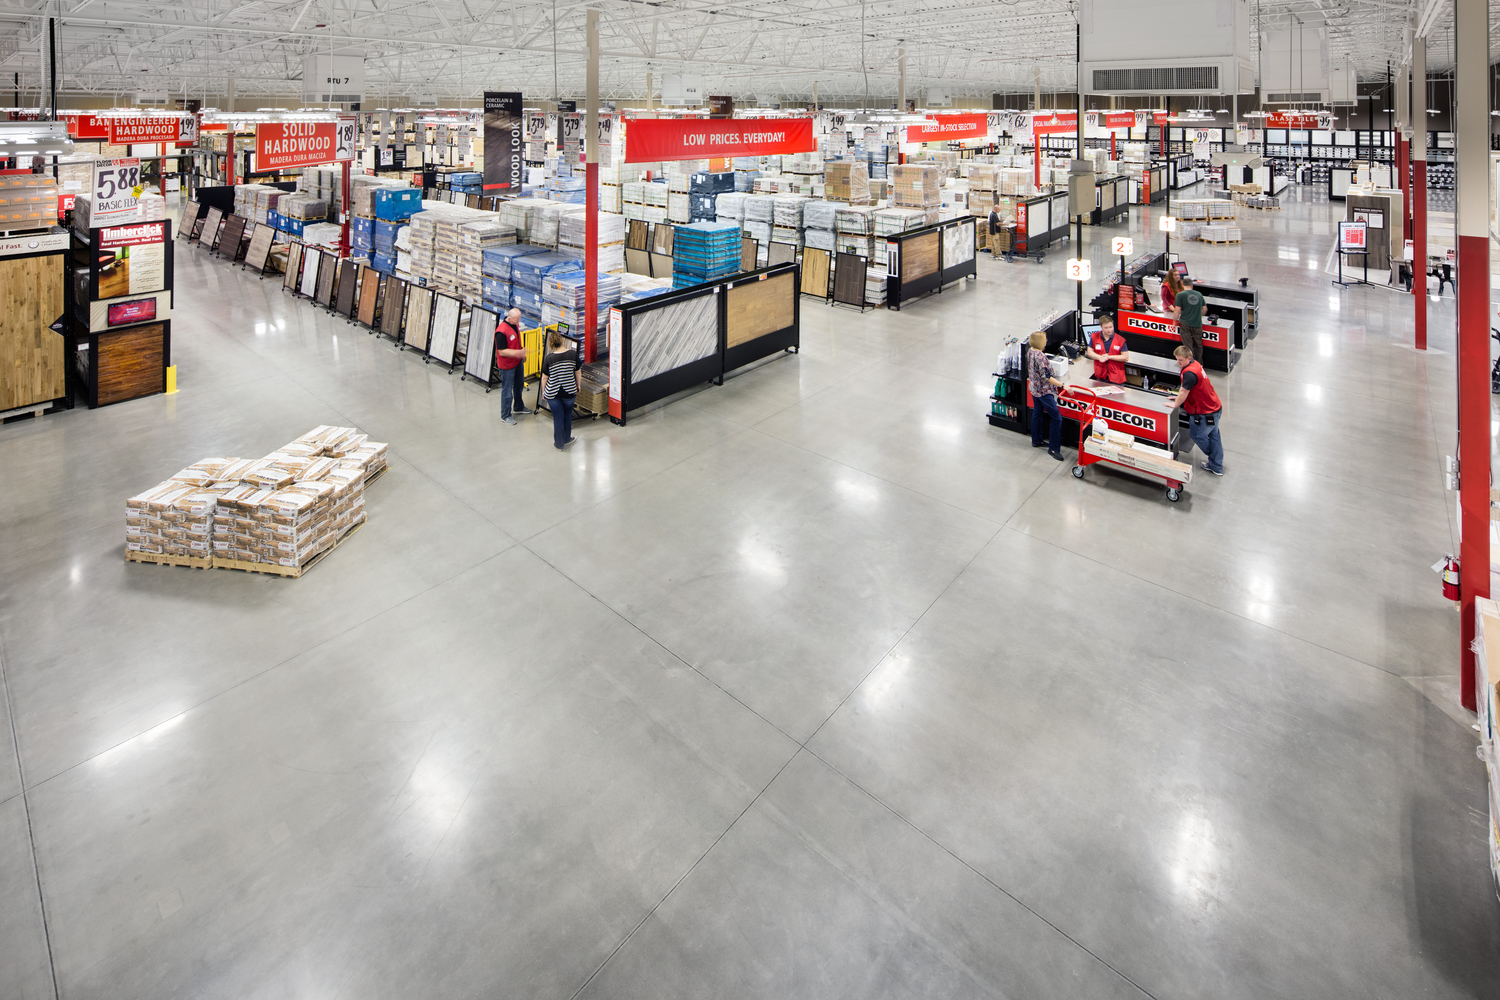 Market, Supermarket, Generator, Machine, Warehouse, Building, Person, Floor